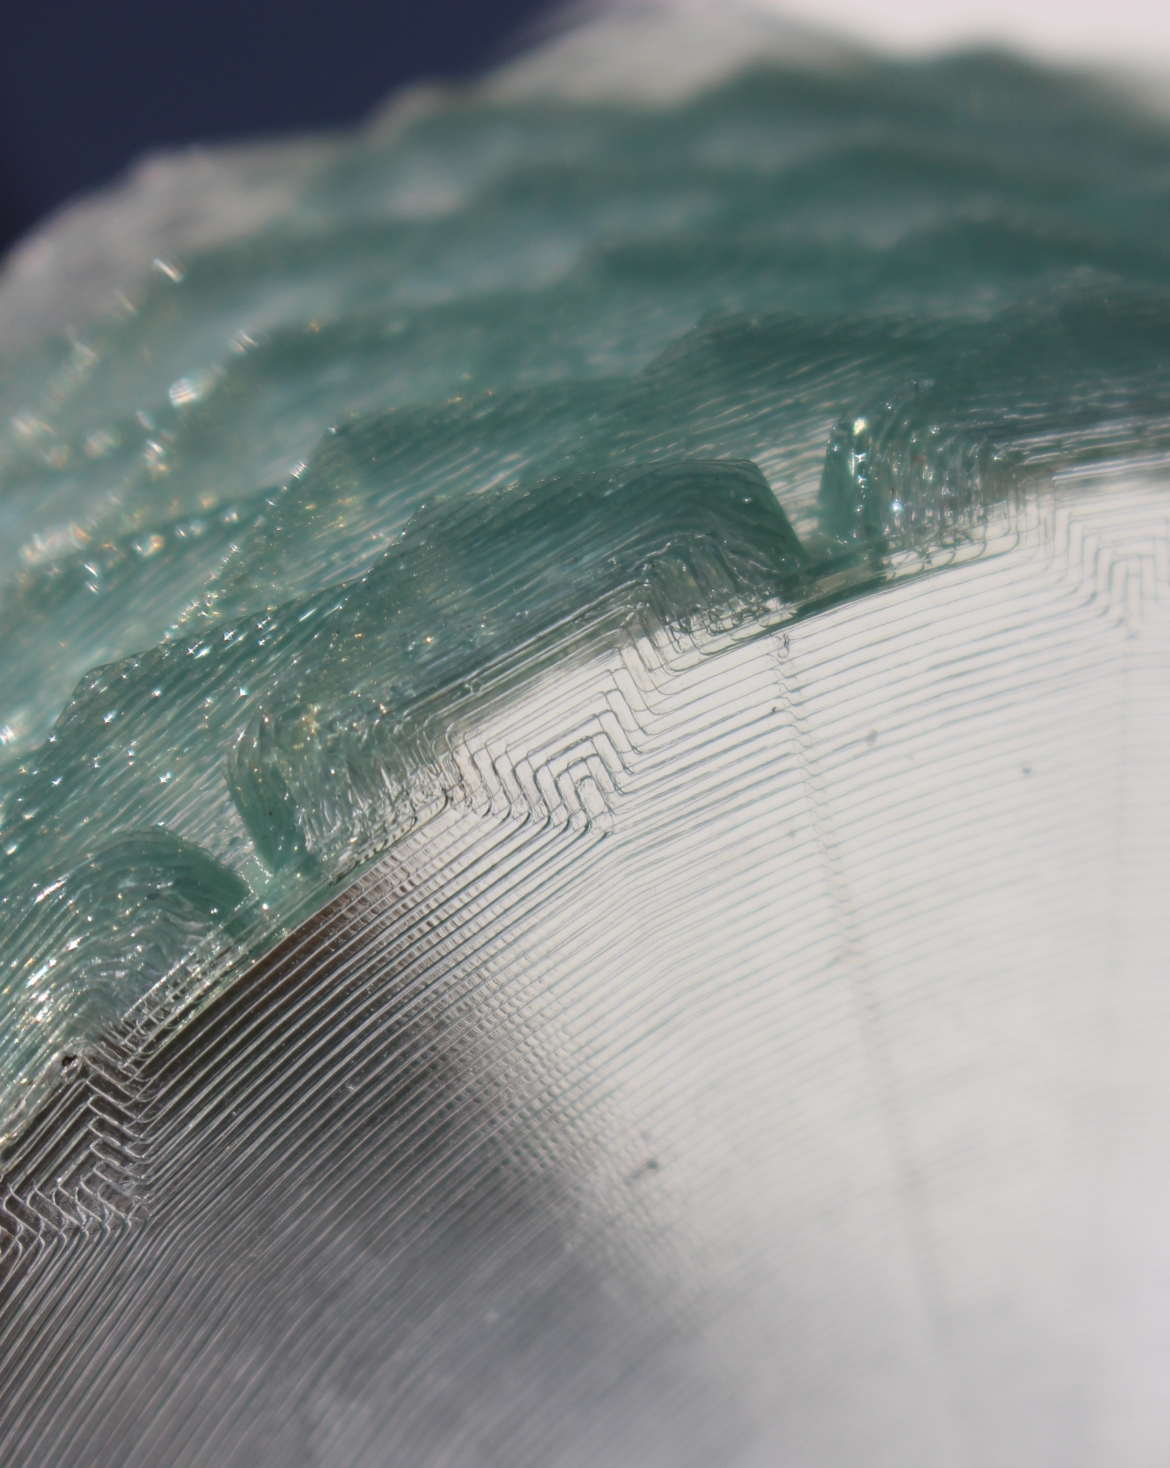 Translucent base of Pineapple vase 0.3mm thick